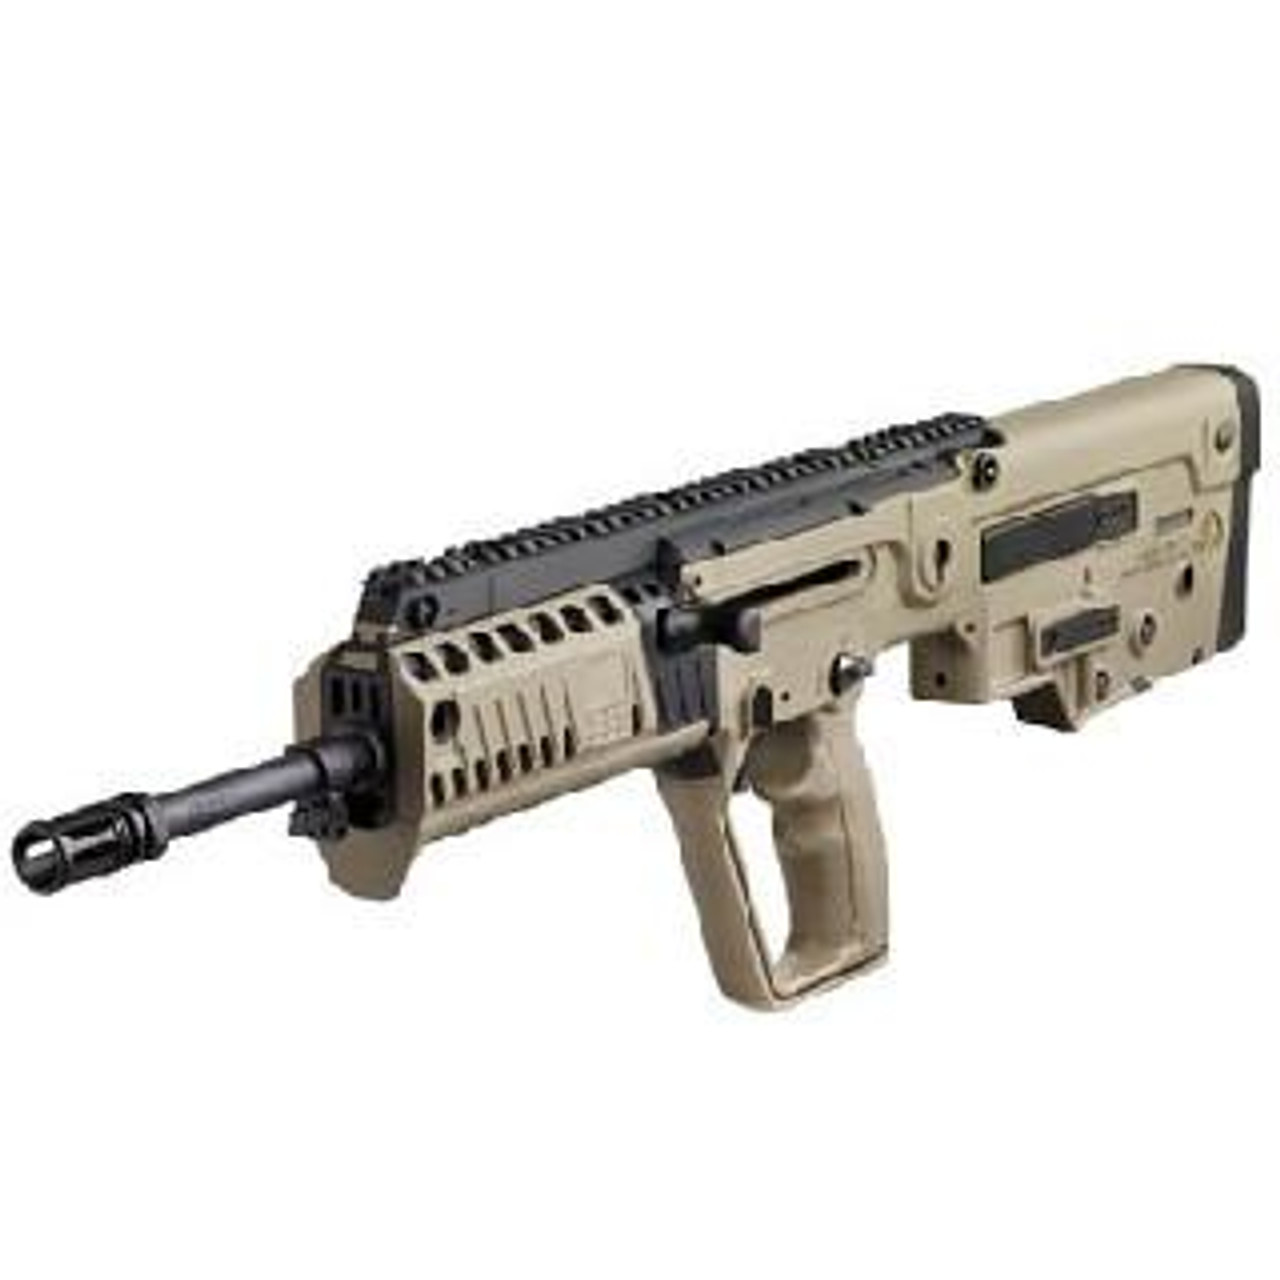 IWI Tavor X95 18in CALIFORNIA LEGAL- 5.56- FDE